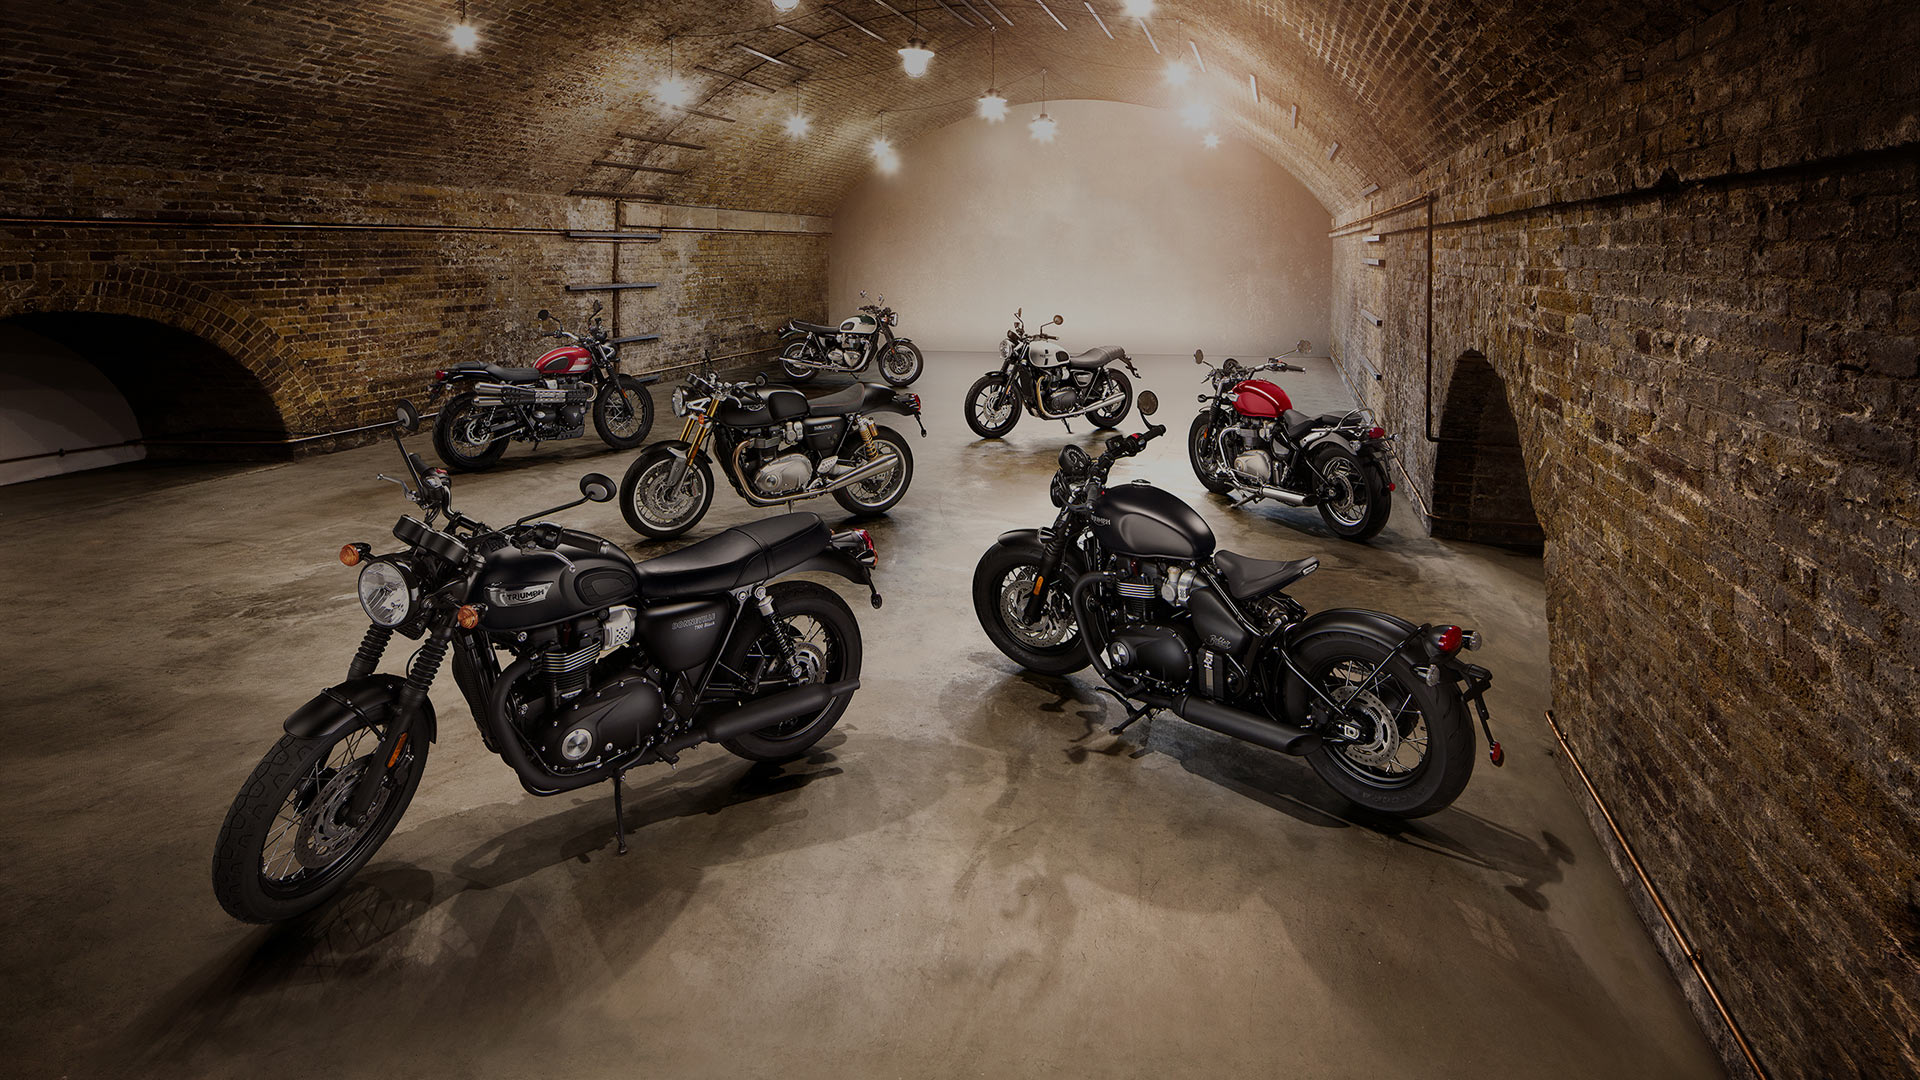 Triumph Motorcycles Classic bikes in warehouse